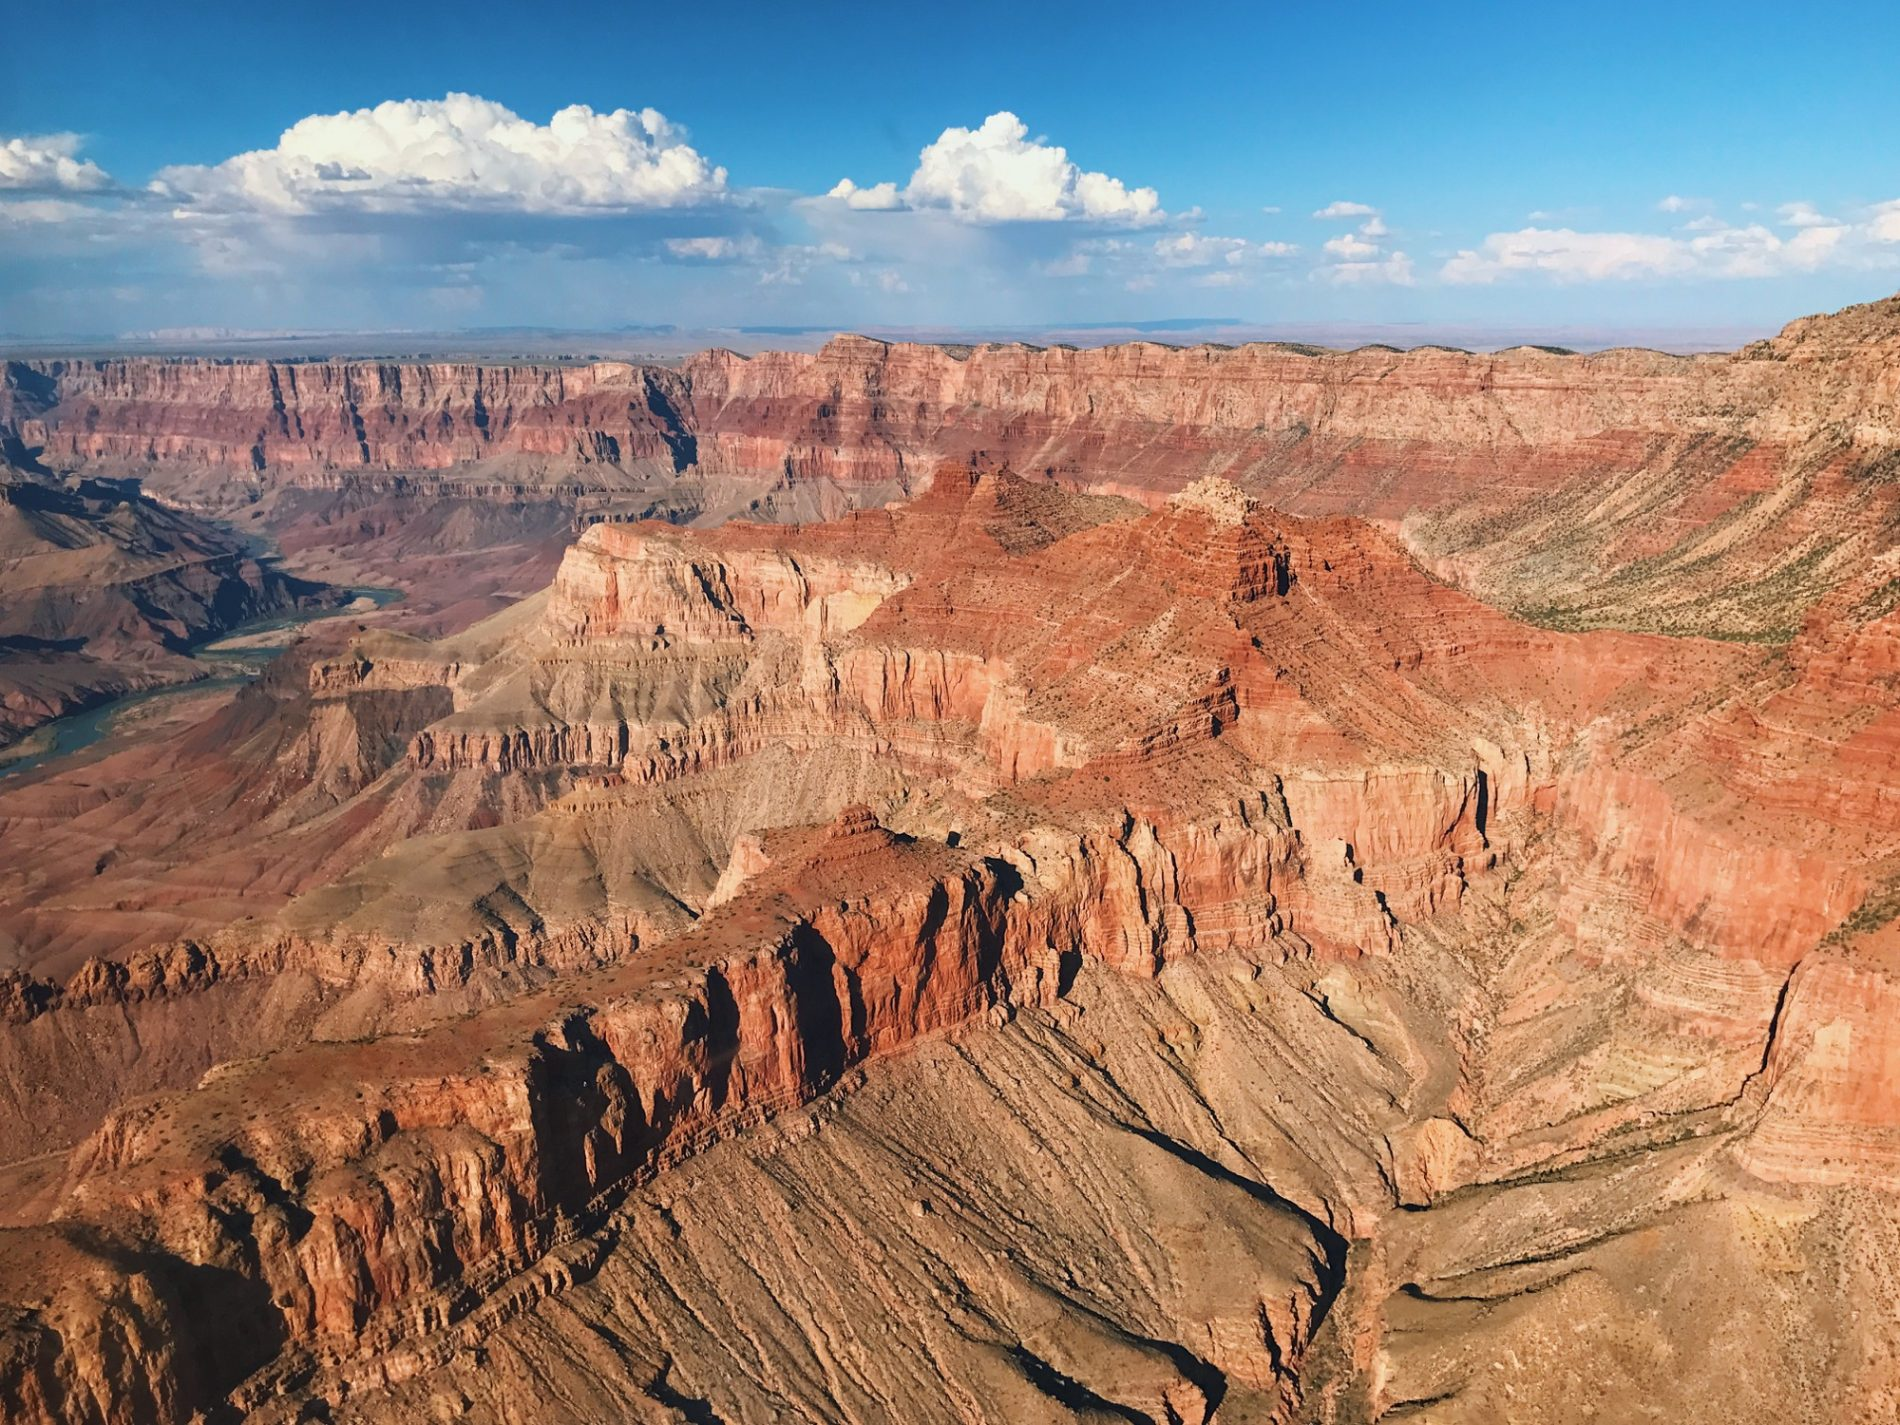 An aerial shot of the Grand Canyon from a helicopter. Strange red rock formations go as far as the eye can see.